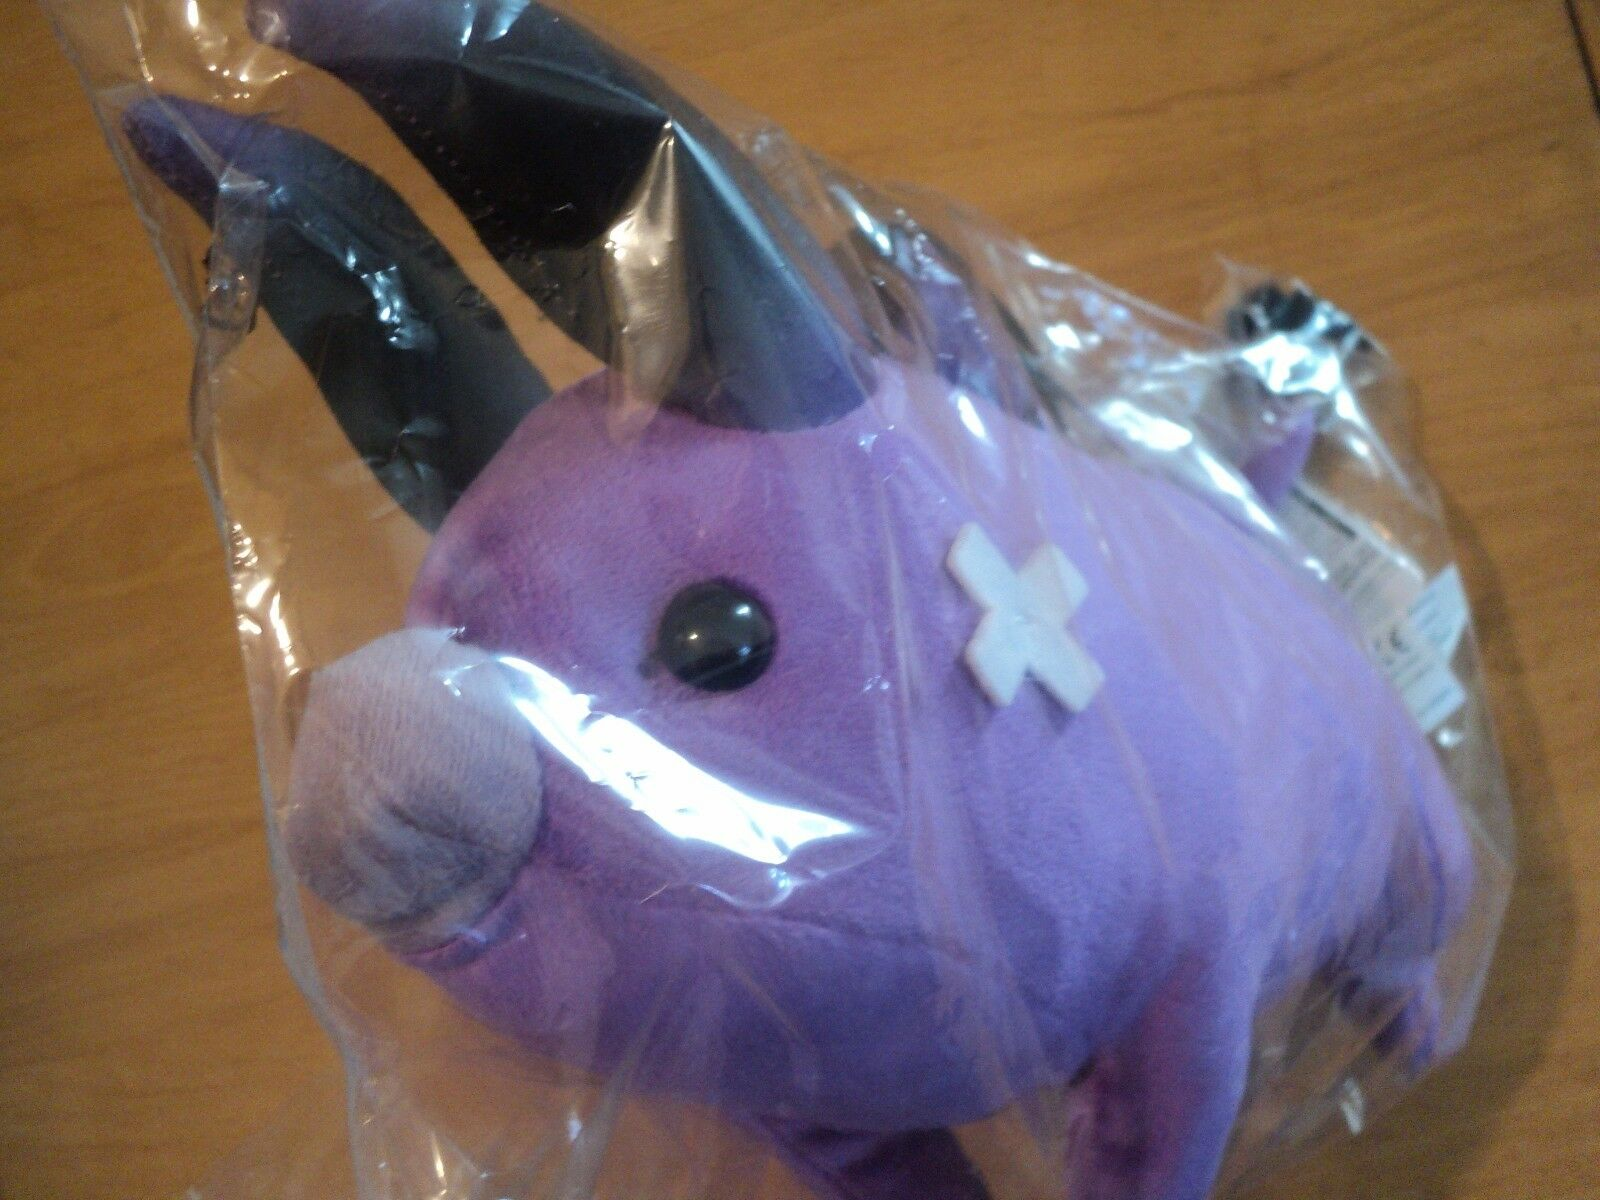 OFFICIAL FINAL FANTASY XIV 14 BABY BEHEMOTH PLUSH SOFT TOY + CODE - NEW SEALED